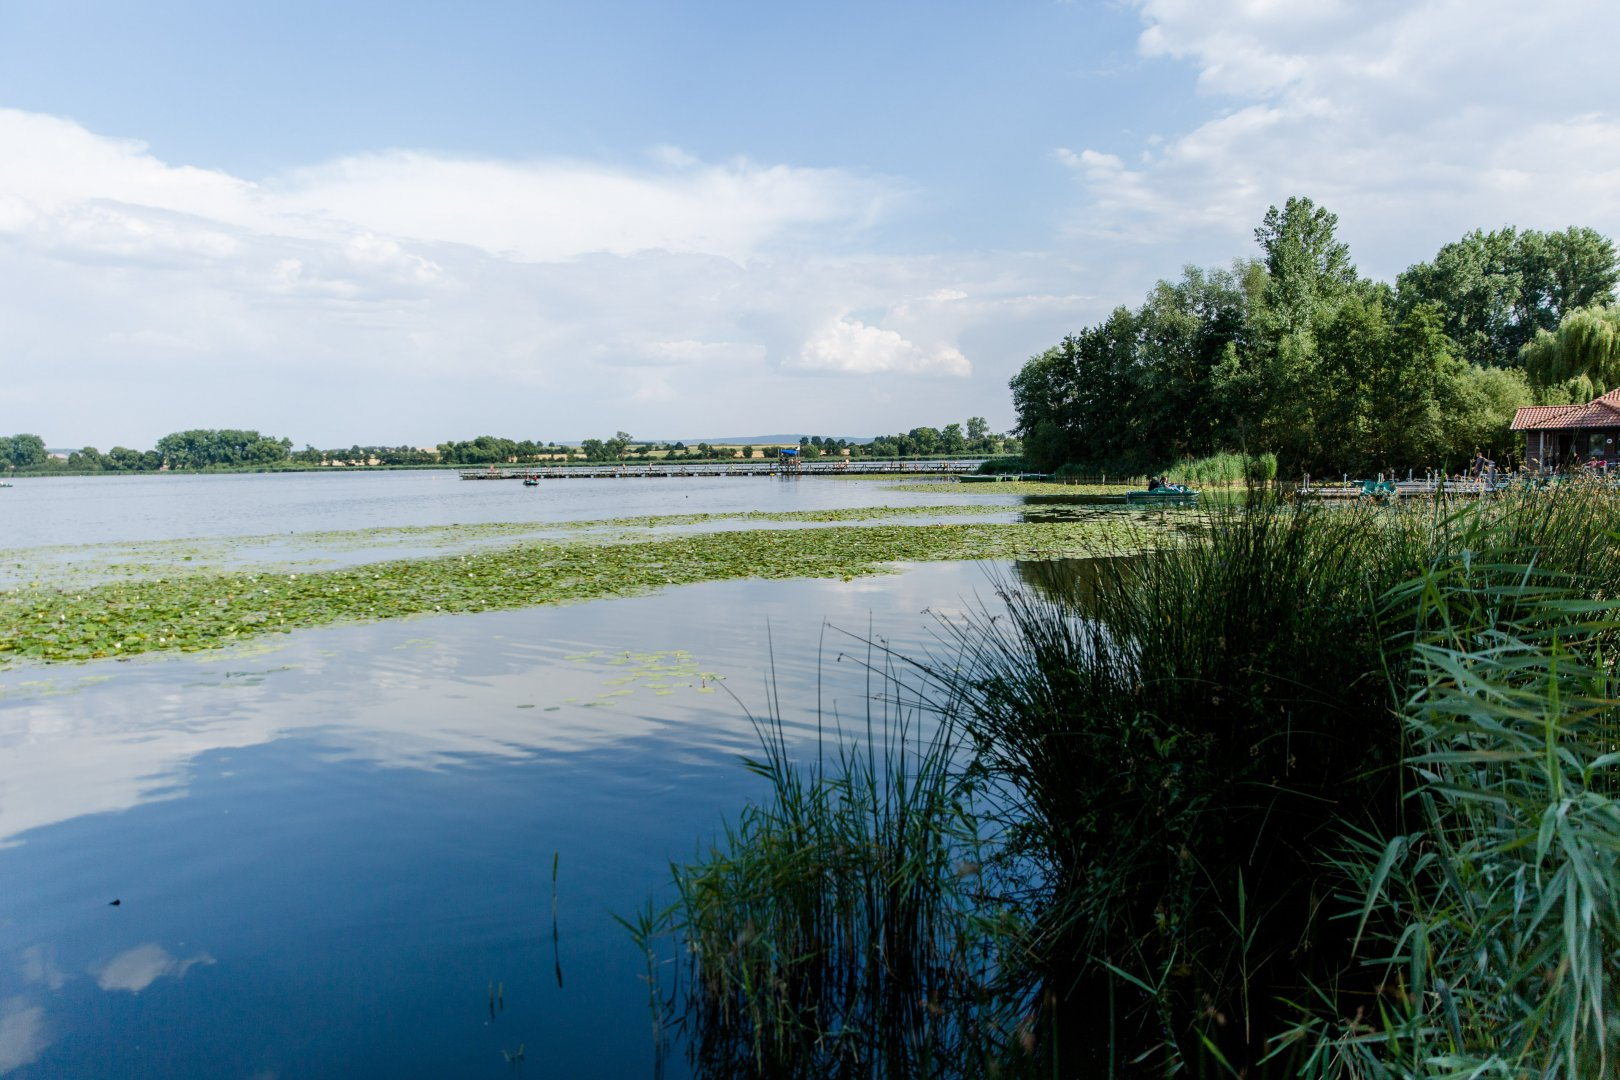 Body of water Natural landscape Water Nature Water resources River Sky Vegetation Natural environment Bank Green Nature reserve Lake Reflection Waterway Tree Floodplain Cloud Watercourse Grass family Grass Reservoir Marsh Sea Wetland Landscape Rural area Horizon Plant Pond